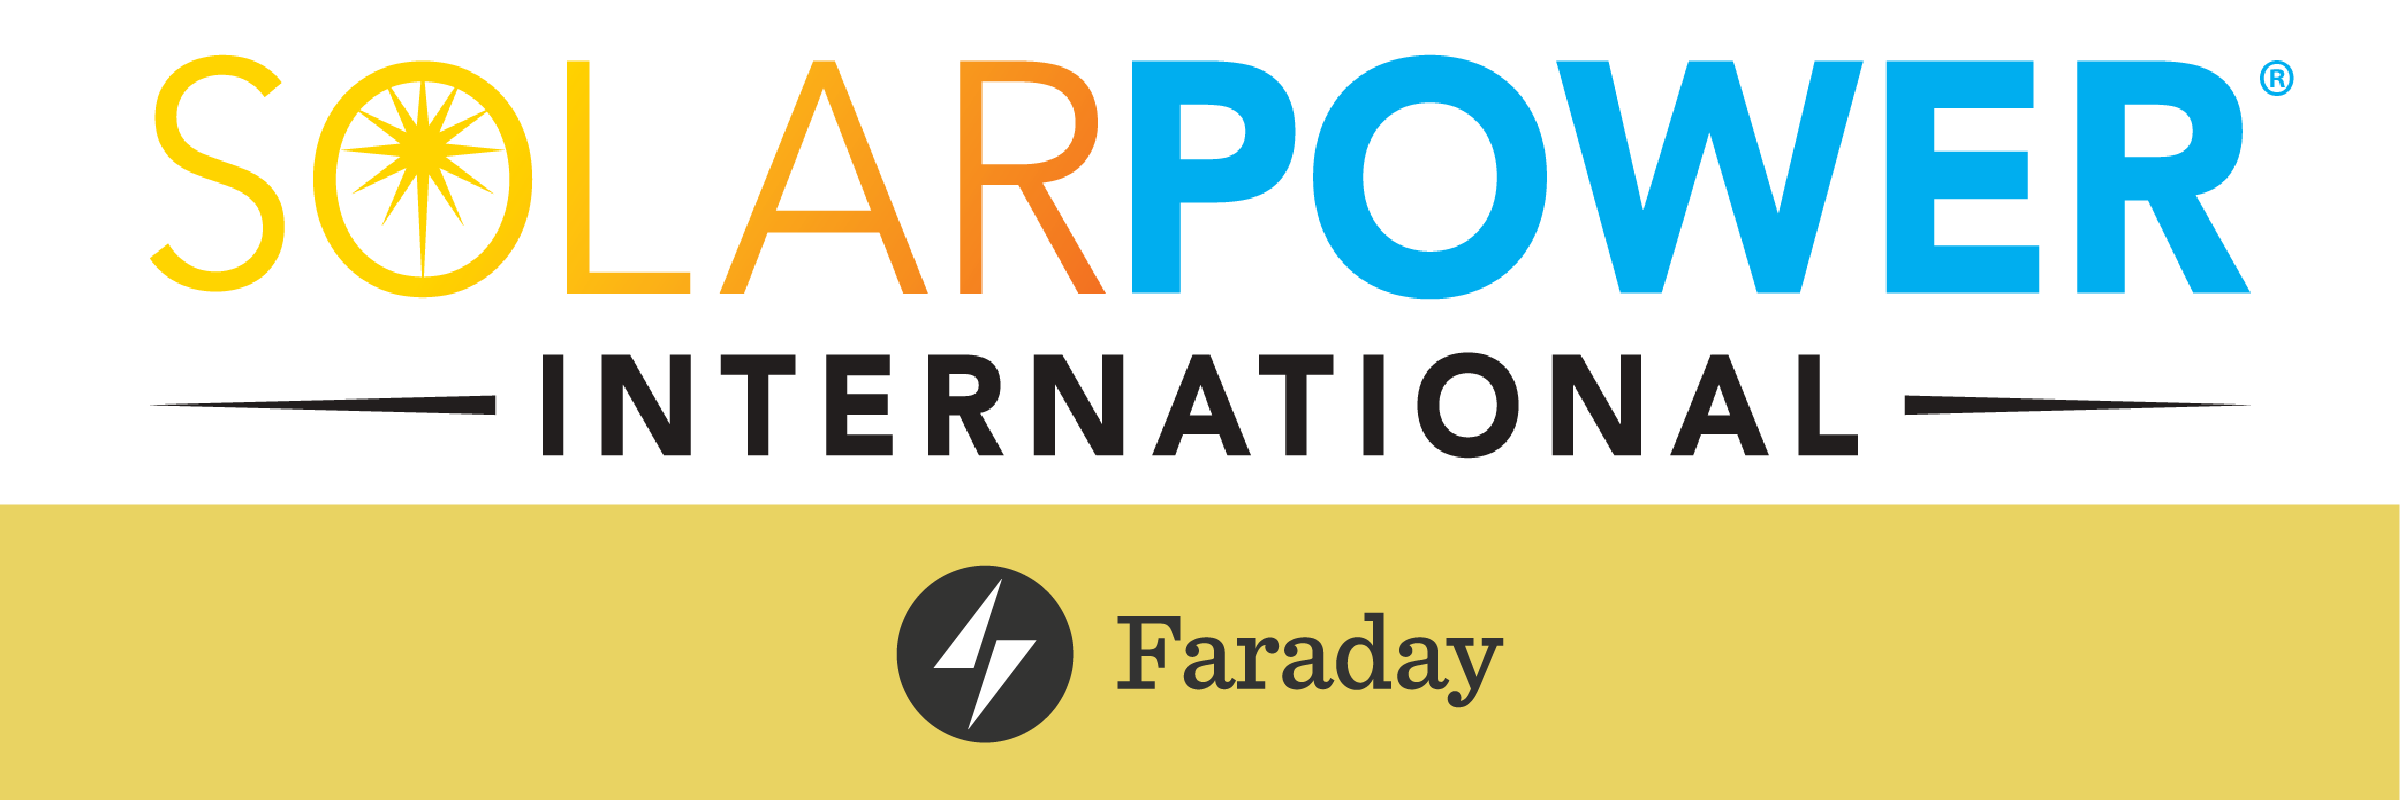 SPI 2019 and Faraday image